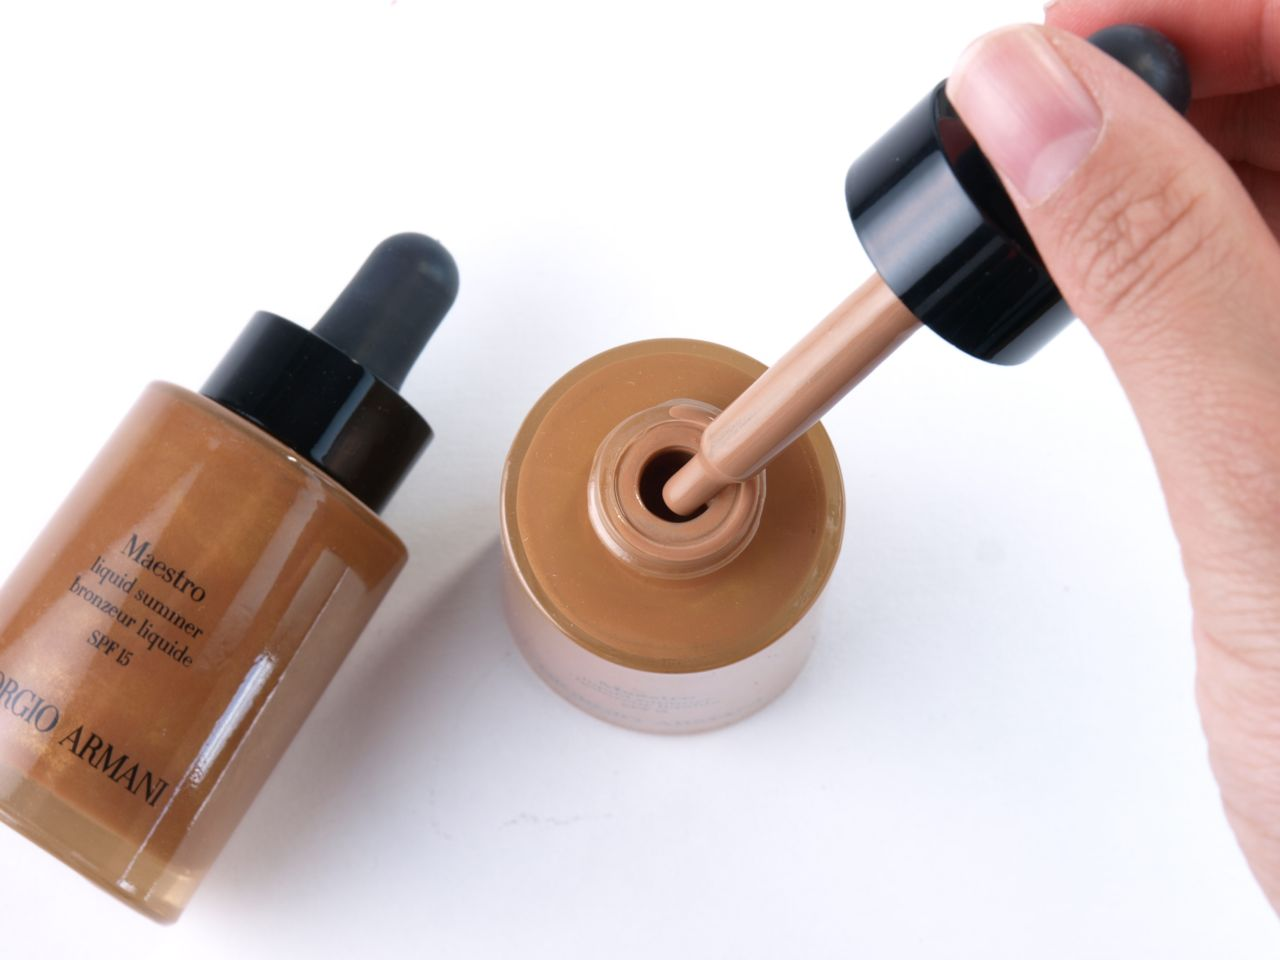 Giorgio Armani Maestro Liquid Summer Bronzers: Review and Swatches